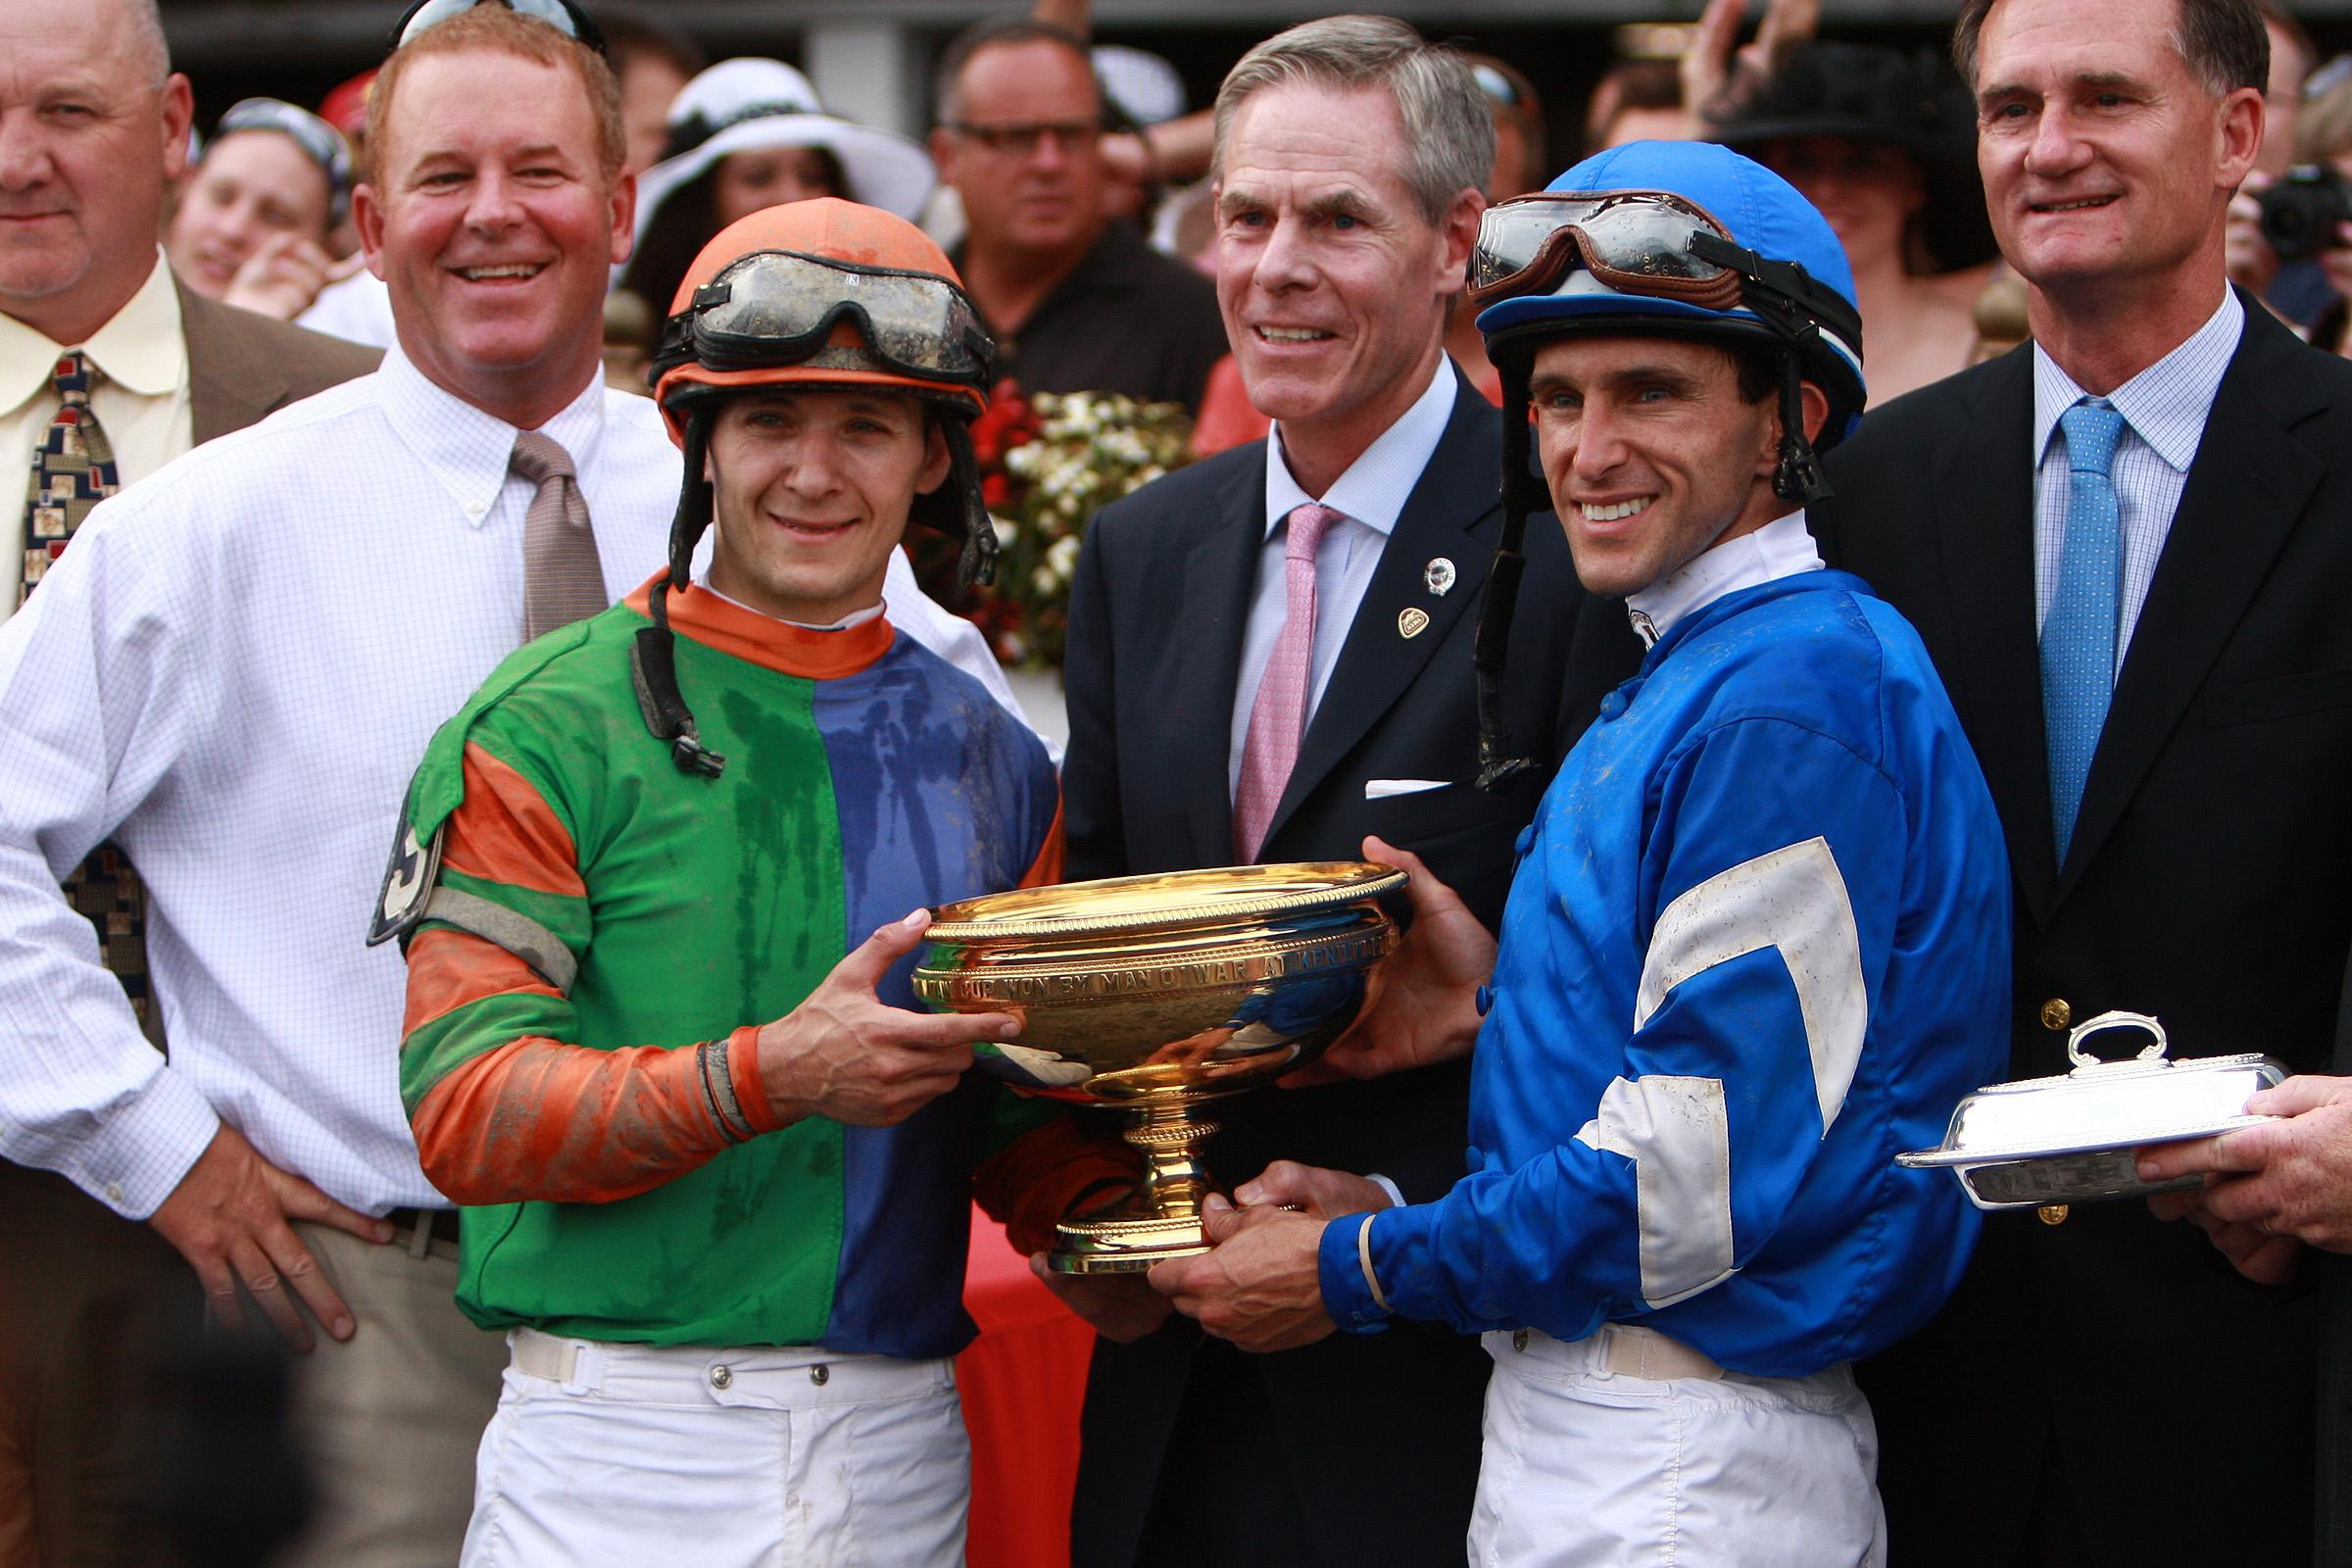 Ramon Dominguez holds the Travers trophy.